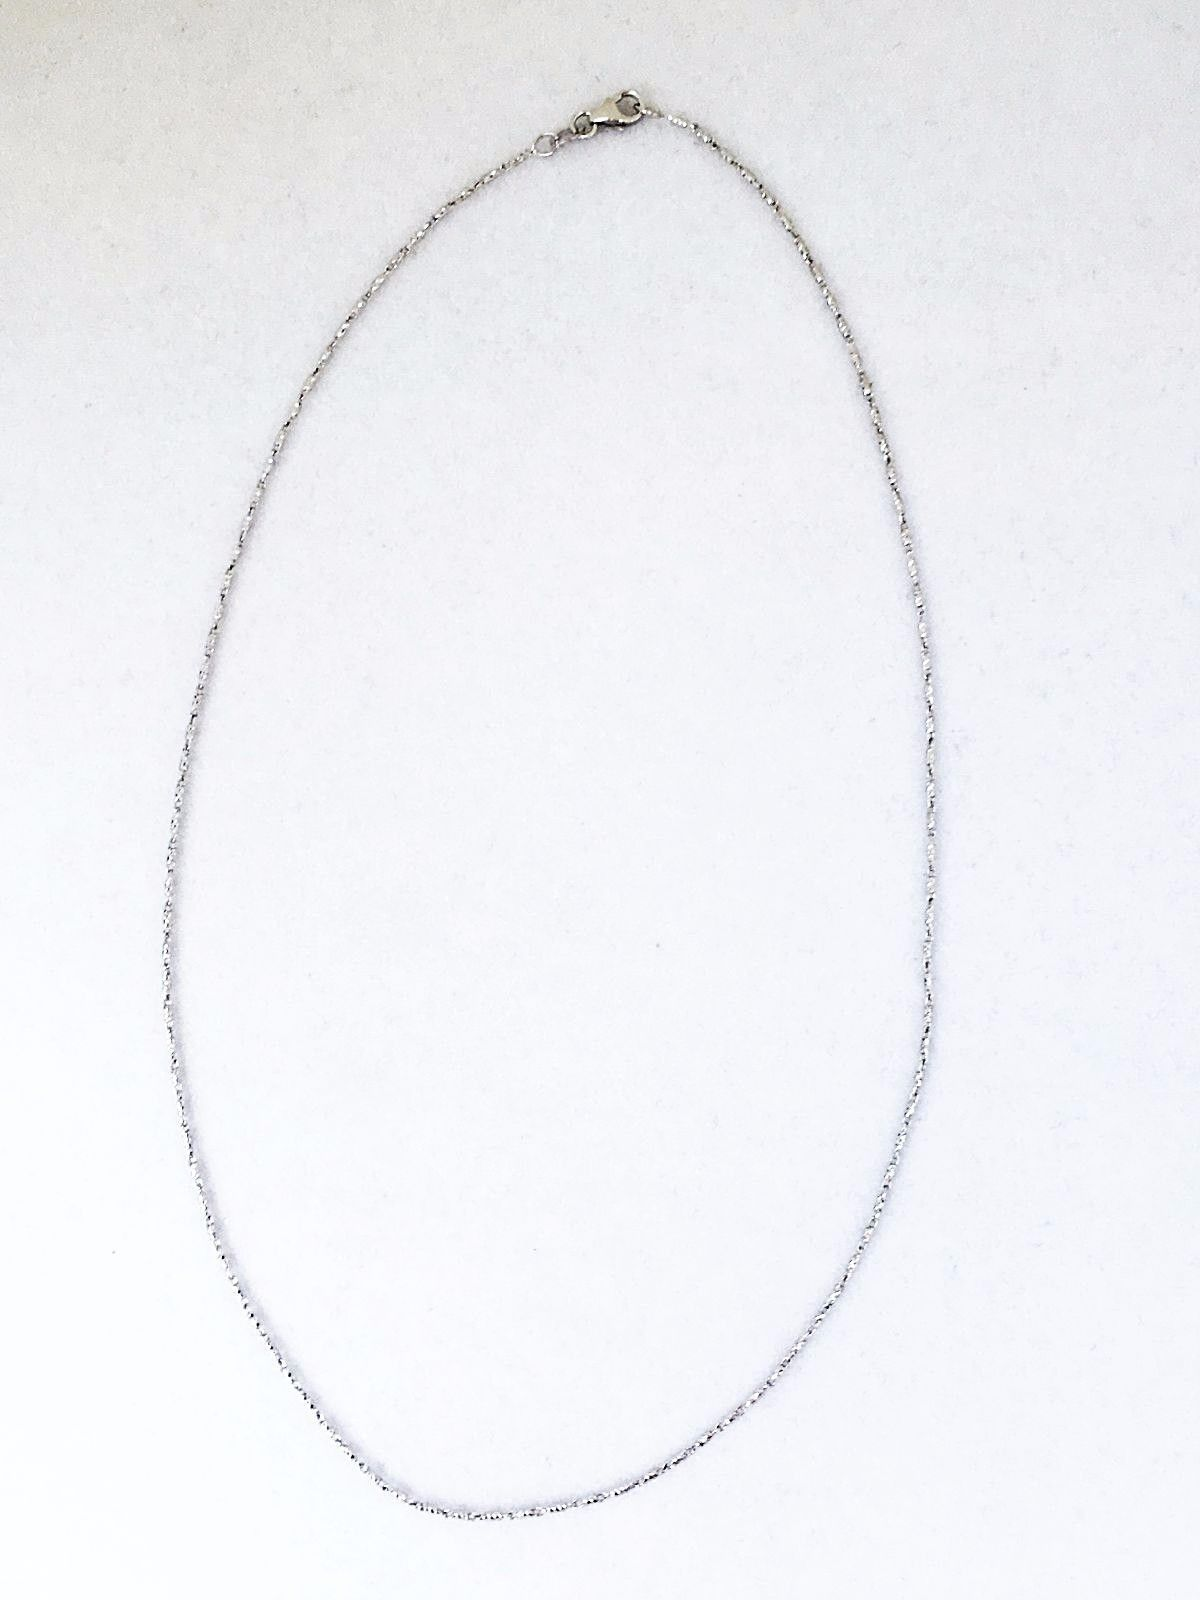 16 inch 14K white gold Raso chain, lobster clasp 3.1 grams 1.0 mm $420